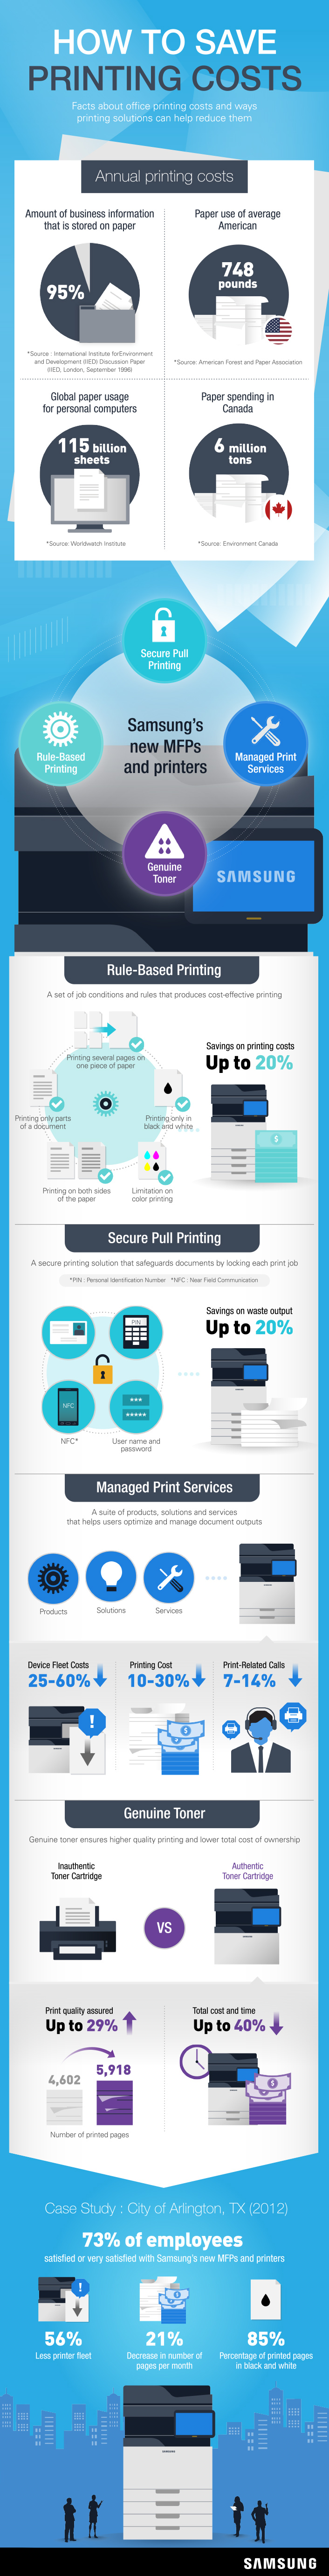 [infographic] saving costs with samsung printing